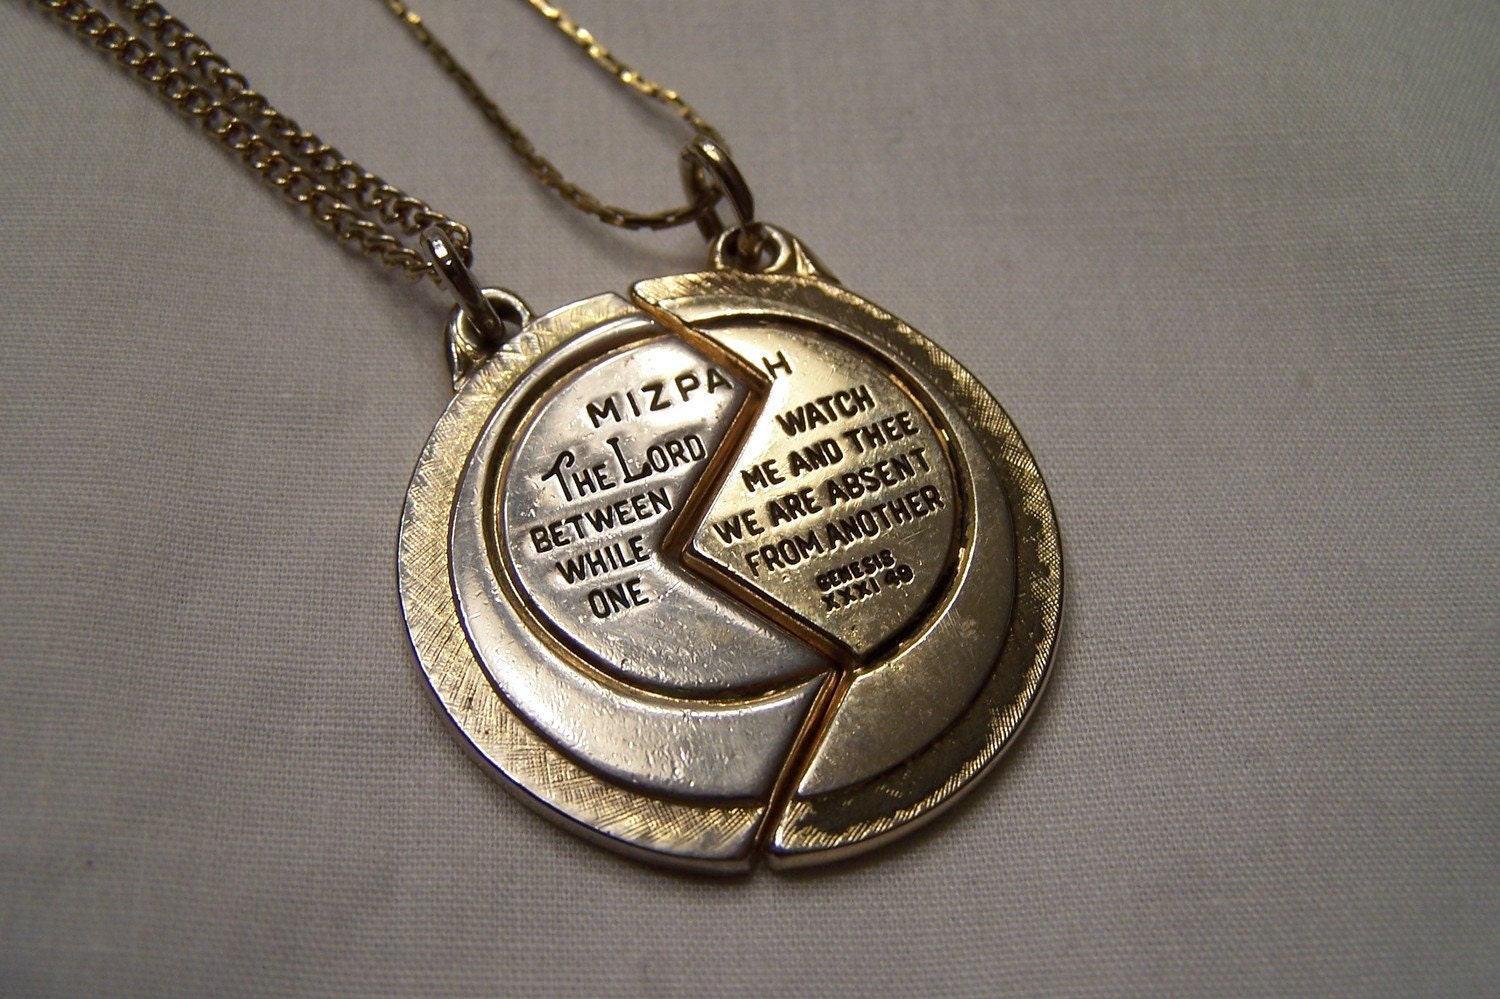 Mizpah coin necklace mizpah coin necklace can all downloads on the 2 piece mizpah coin pendant in 14k gold the miracle of course was not that the oil for the sacred light in a little cruse lasted as long as they say aloadofball Choice Image